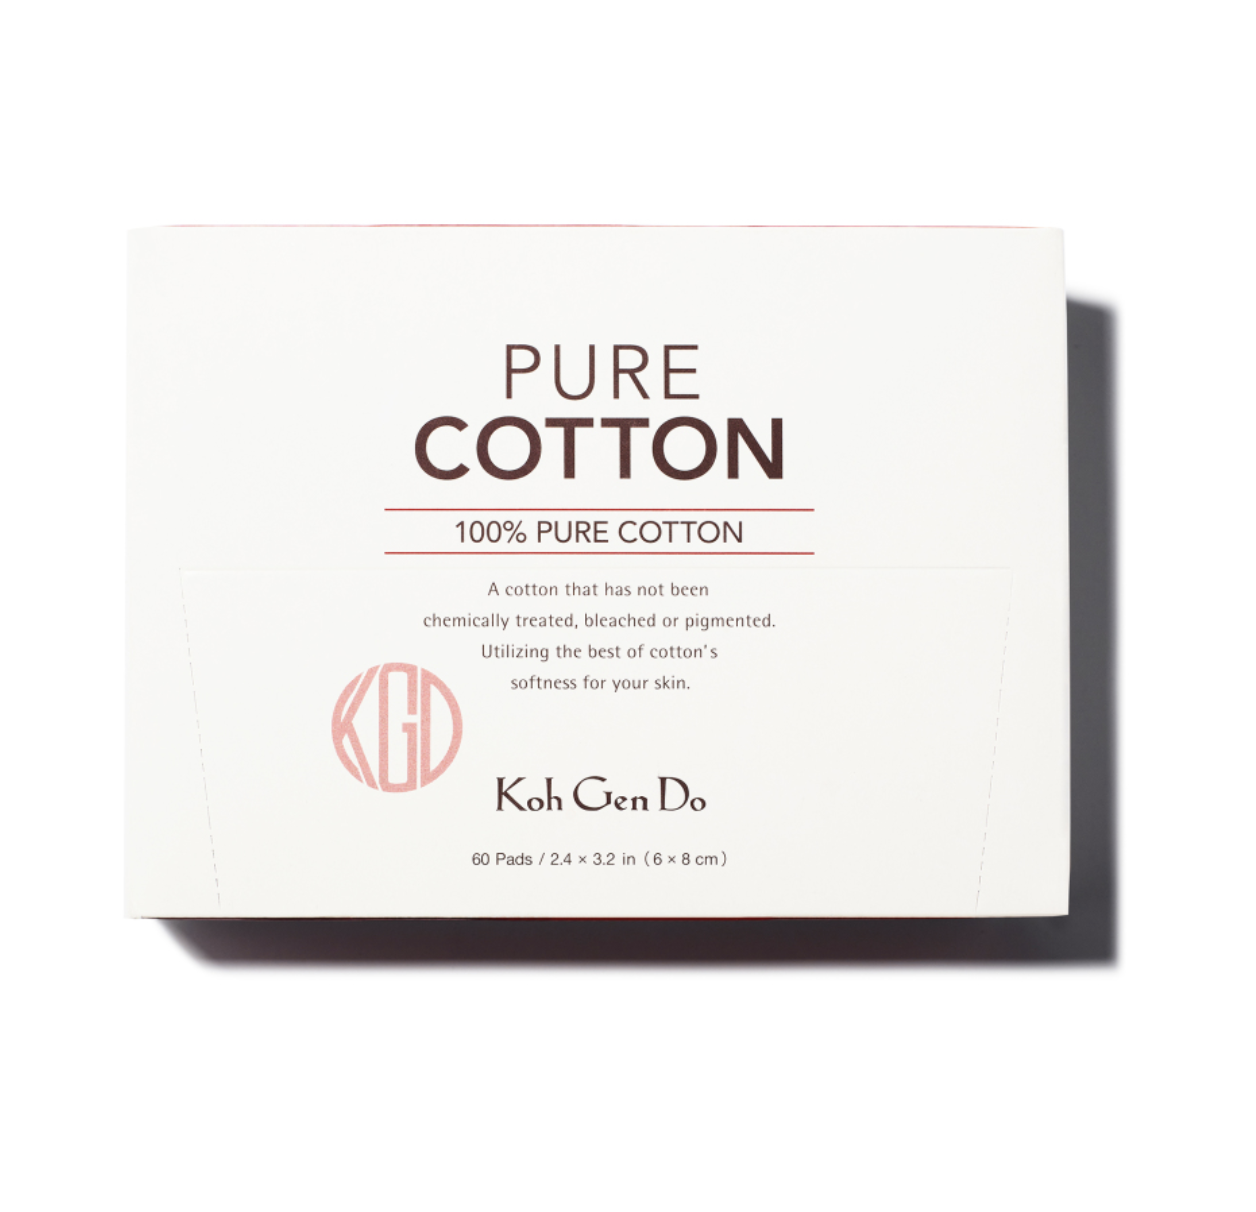 Koh Gen Do Pure Cotten Pads, Available at Koh Gen Cosmetics